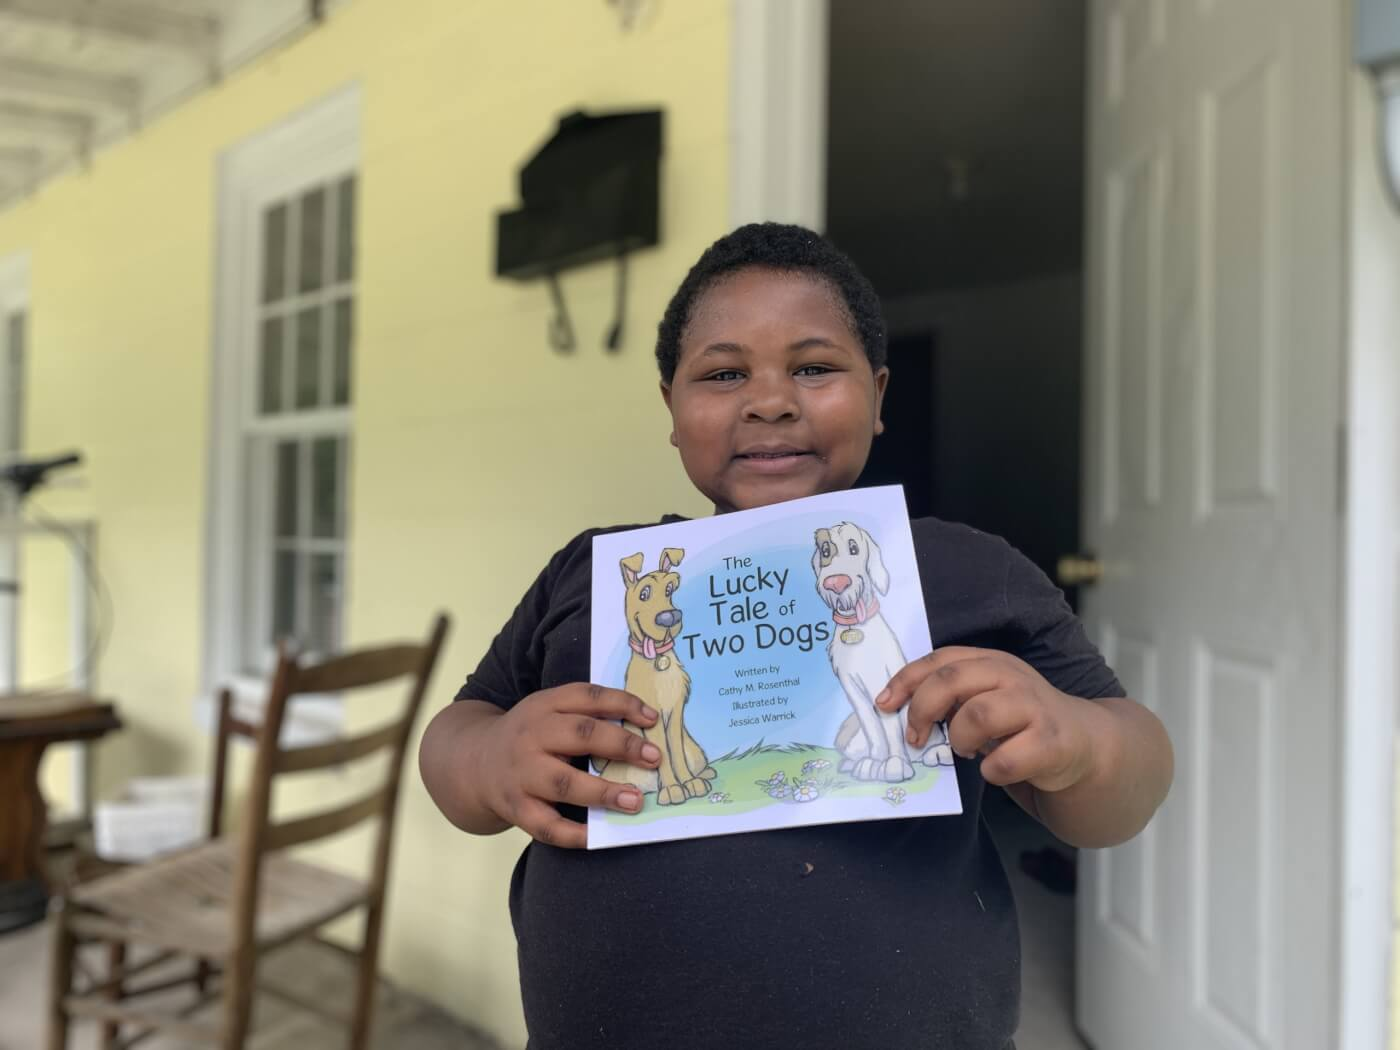 Young child holding a children's book and smiling